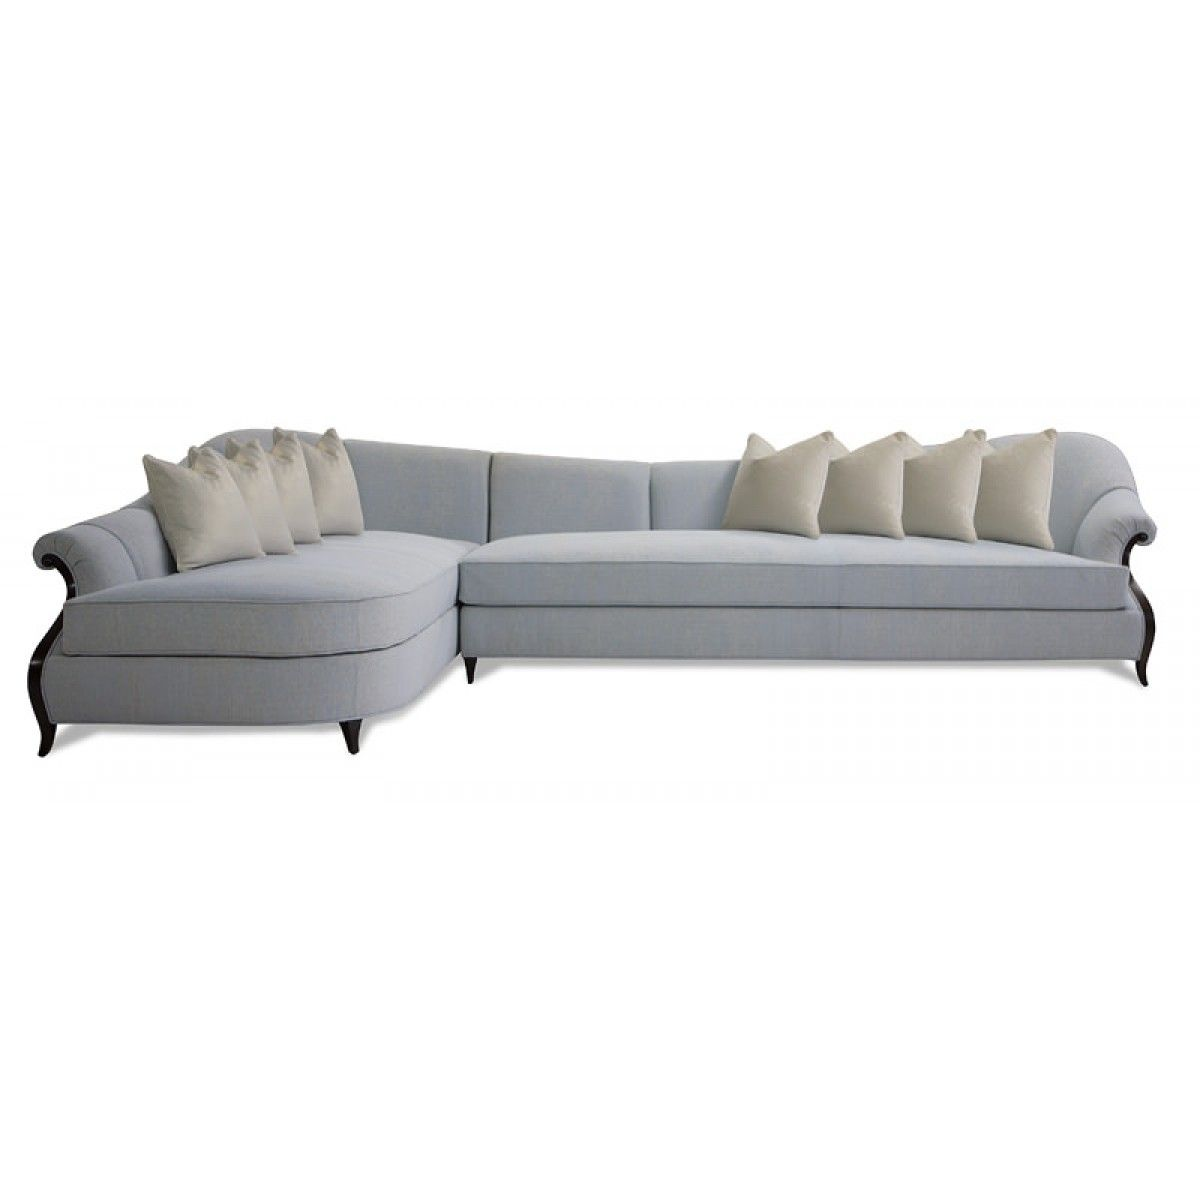 Christopher Guy Virage | Unlimited Furniture Group (Brooklyn) | $20,000